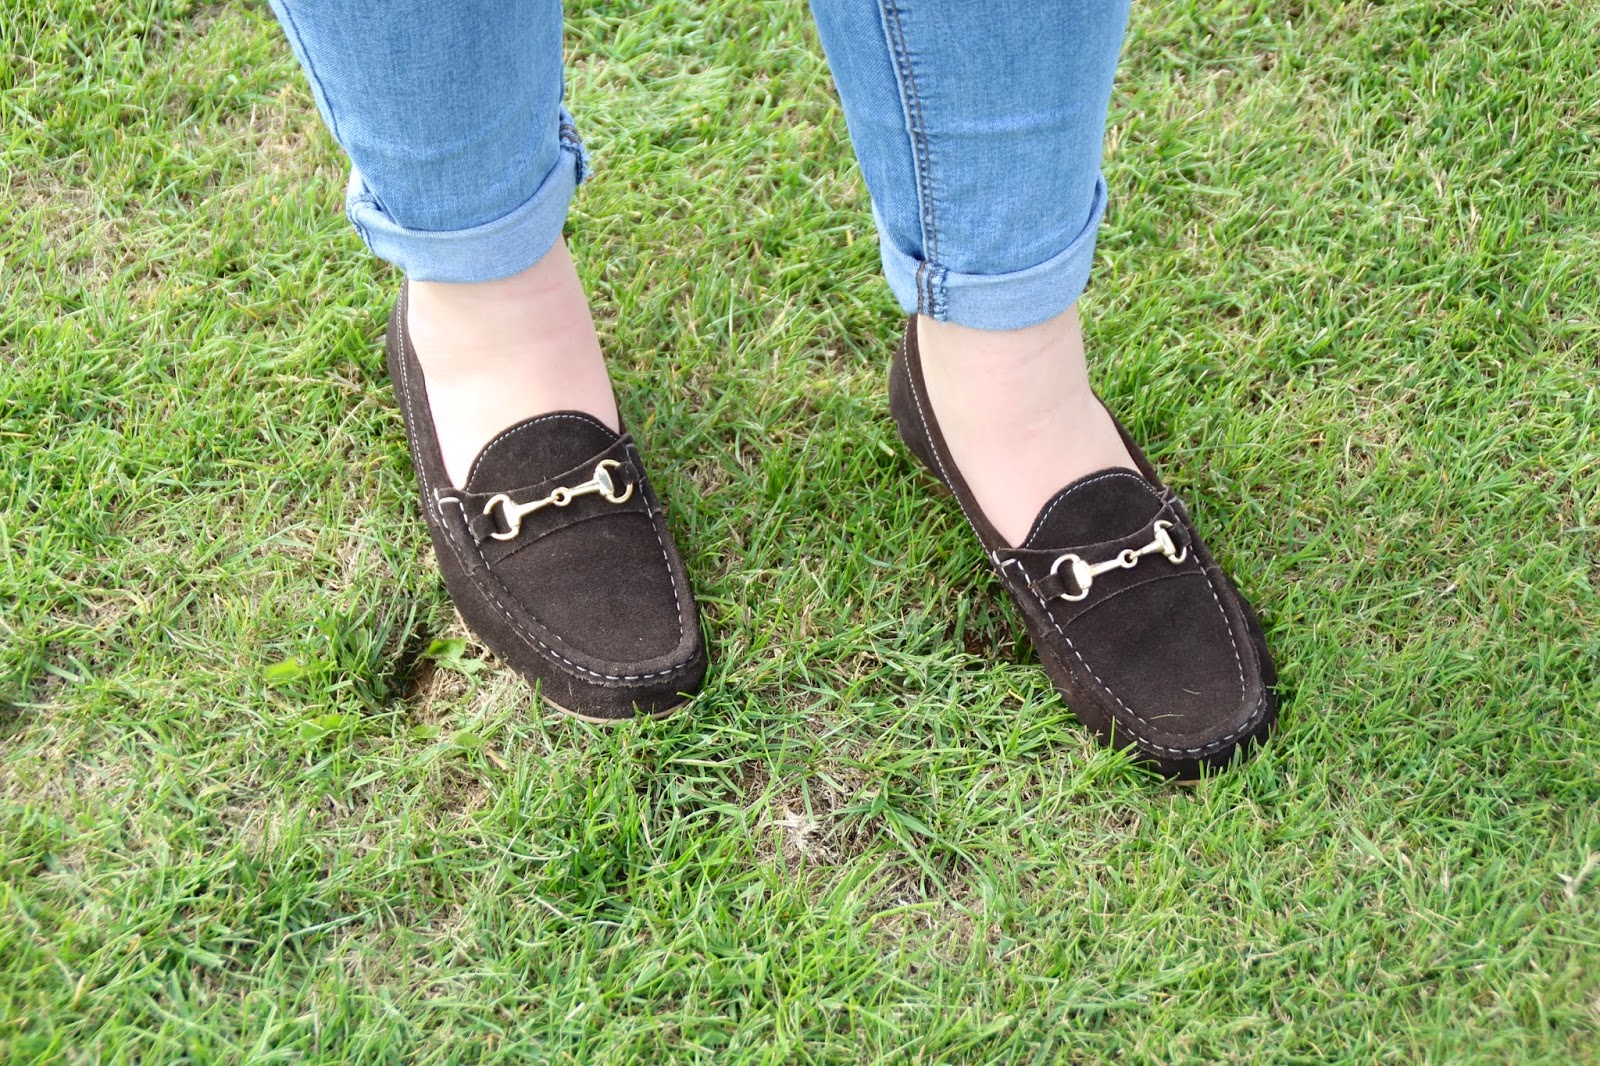 d79777318b7 The shoes are reasonably priced at £40 so would be a great substitute for  the similarly styled Ariat Cruiser loafers for anyone on a budget - however  coming ...